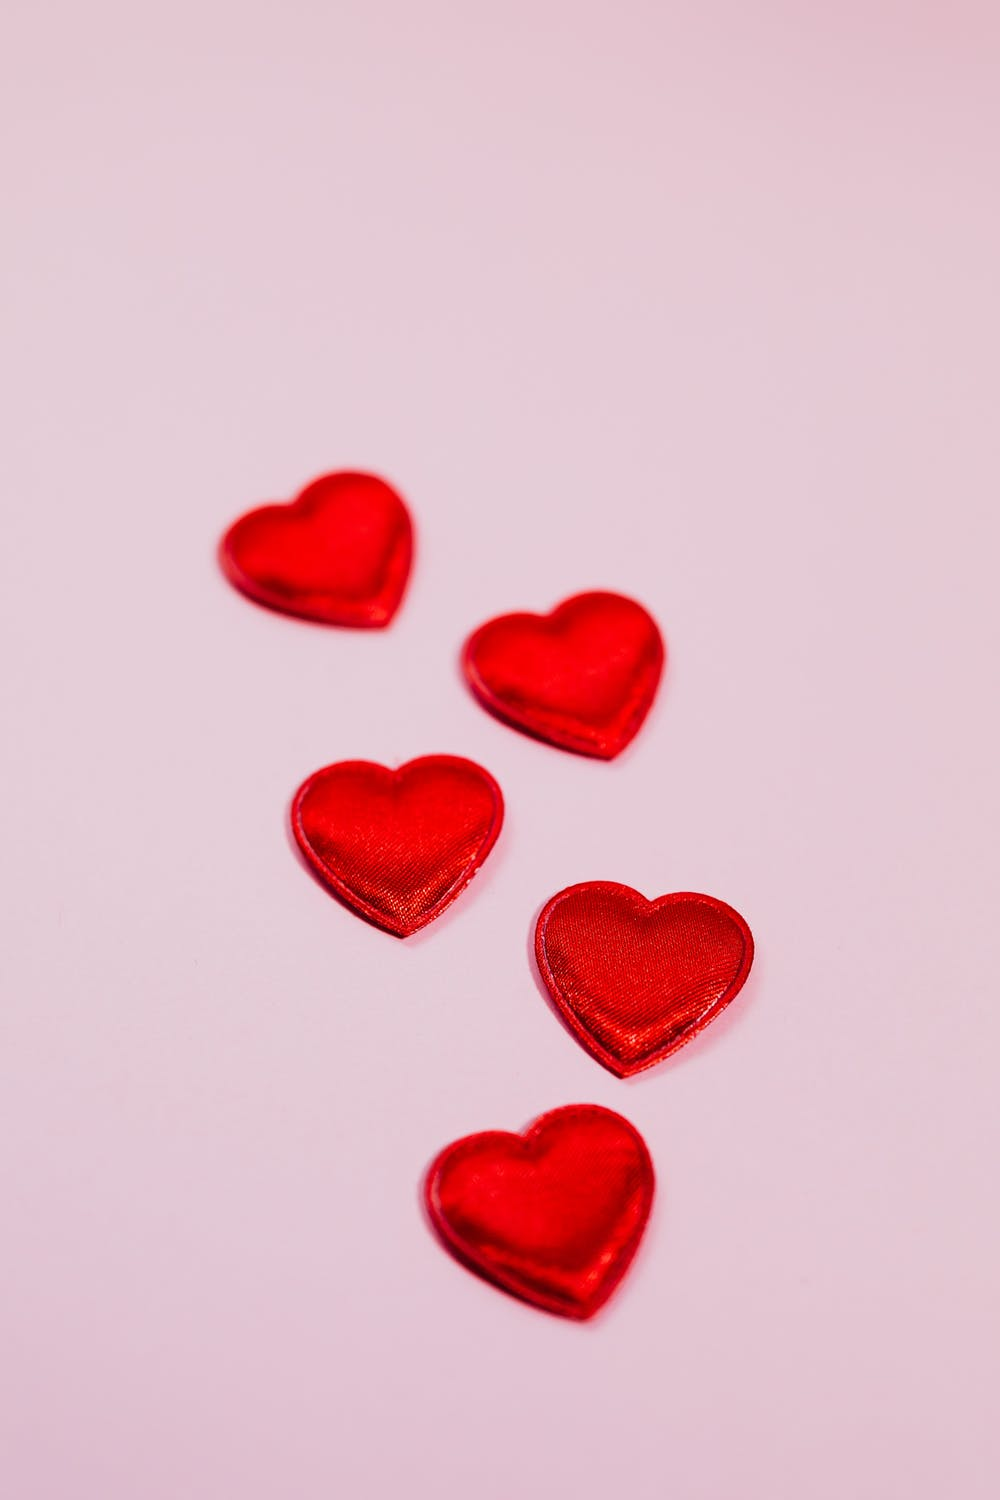 Red heart iPhone wallpapers